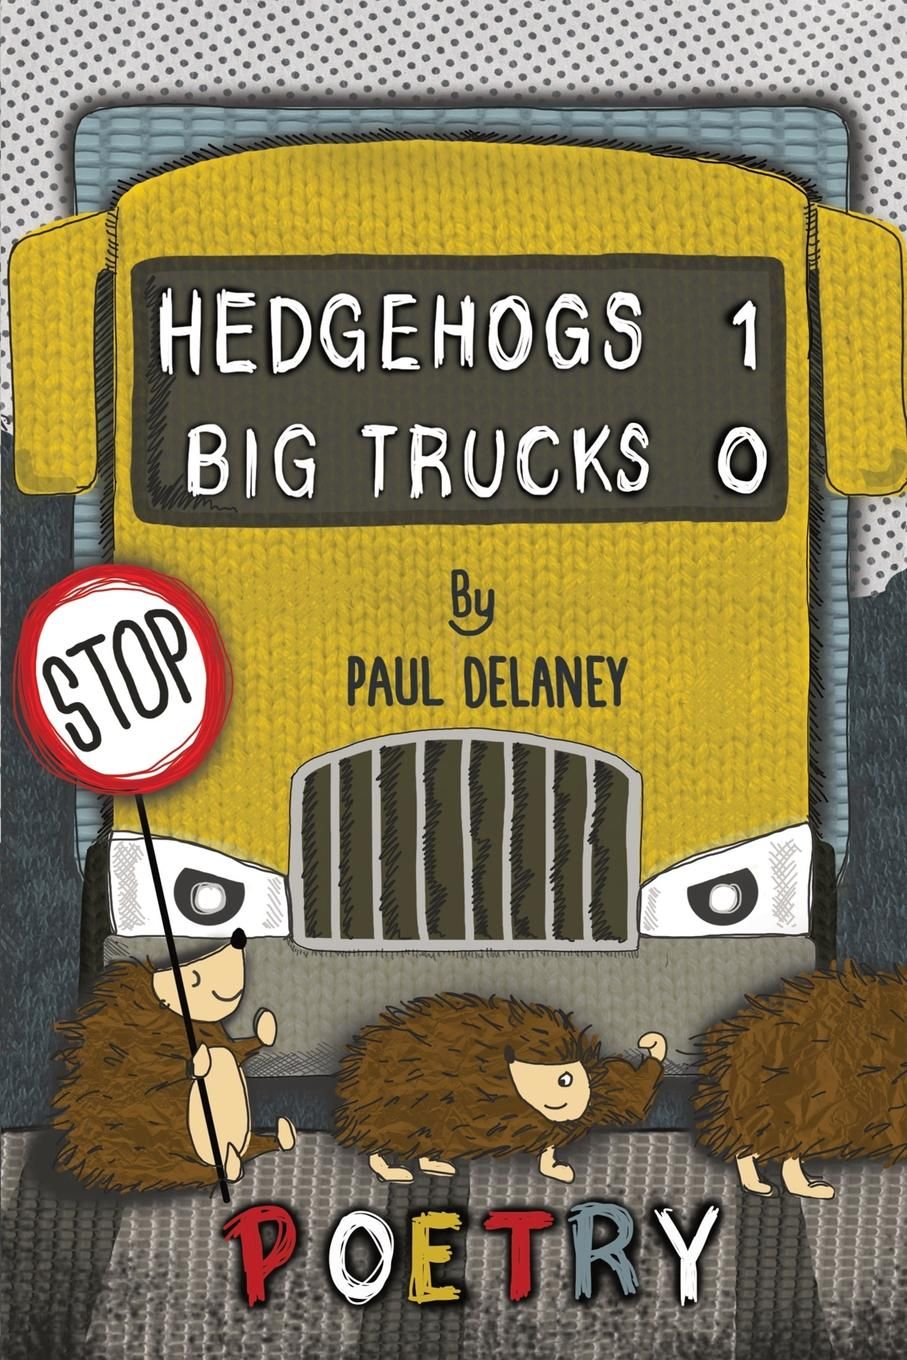 Paul Richard Delaney Hedgehogs 1 Big trucks 0 charents yeghishe poems of yeghishe charent